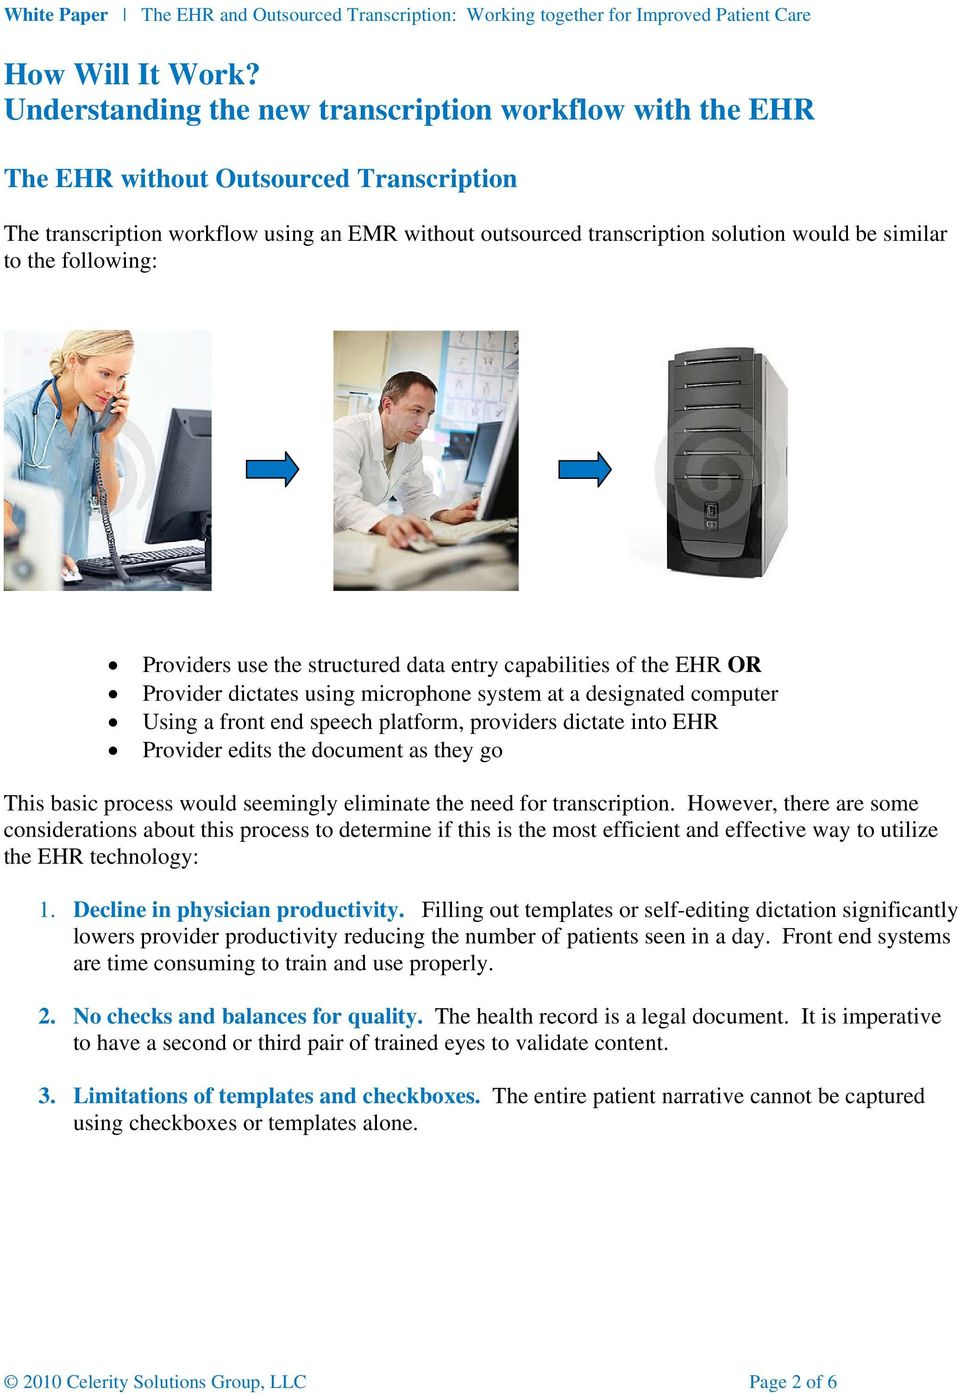 to the following: Providers use the structured data entry capabilities of the EHR OR Provider dictates using microphone system at a designated computer Using a front end speech platform, providers